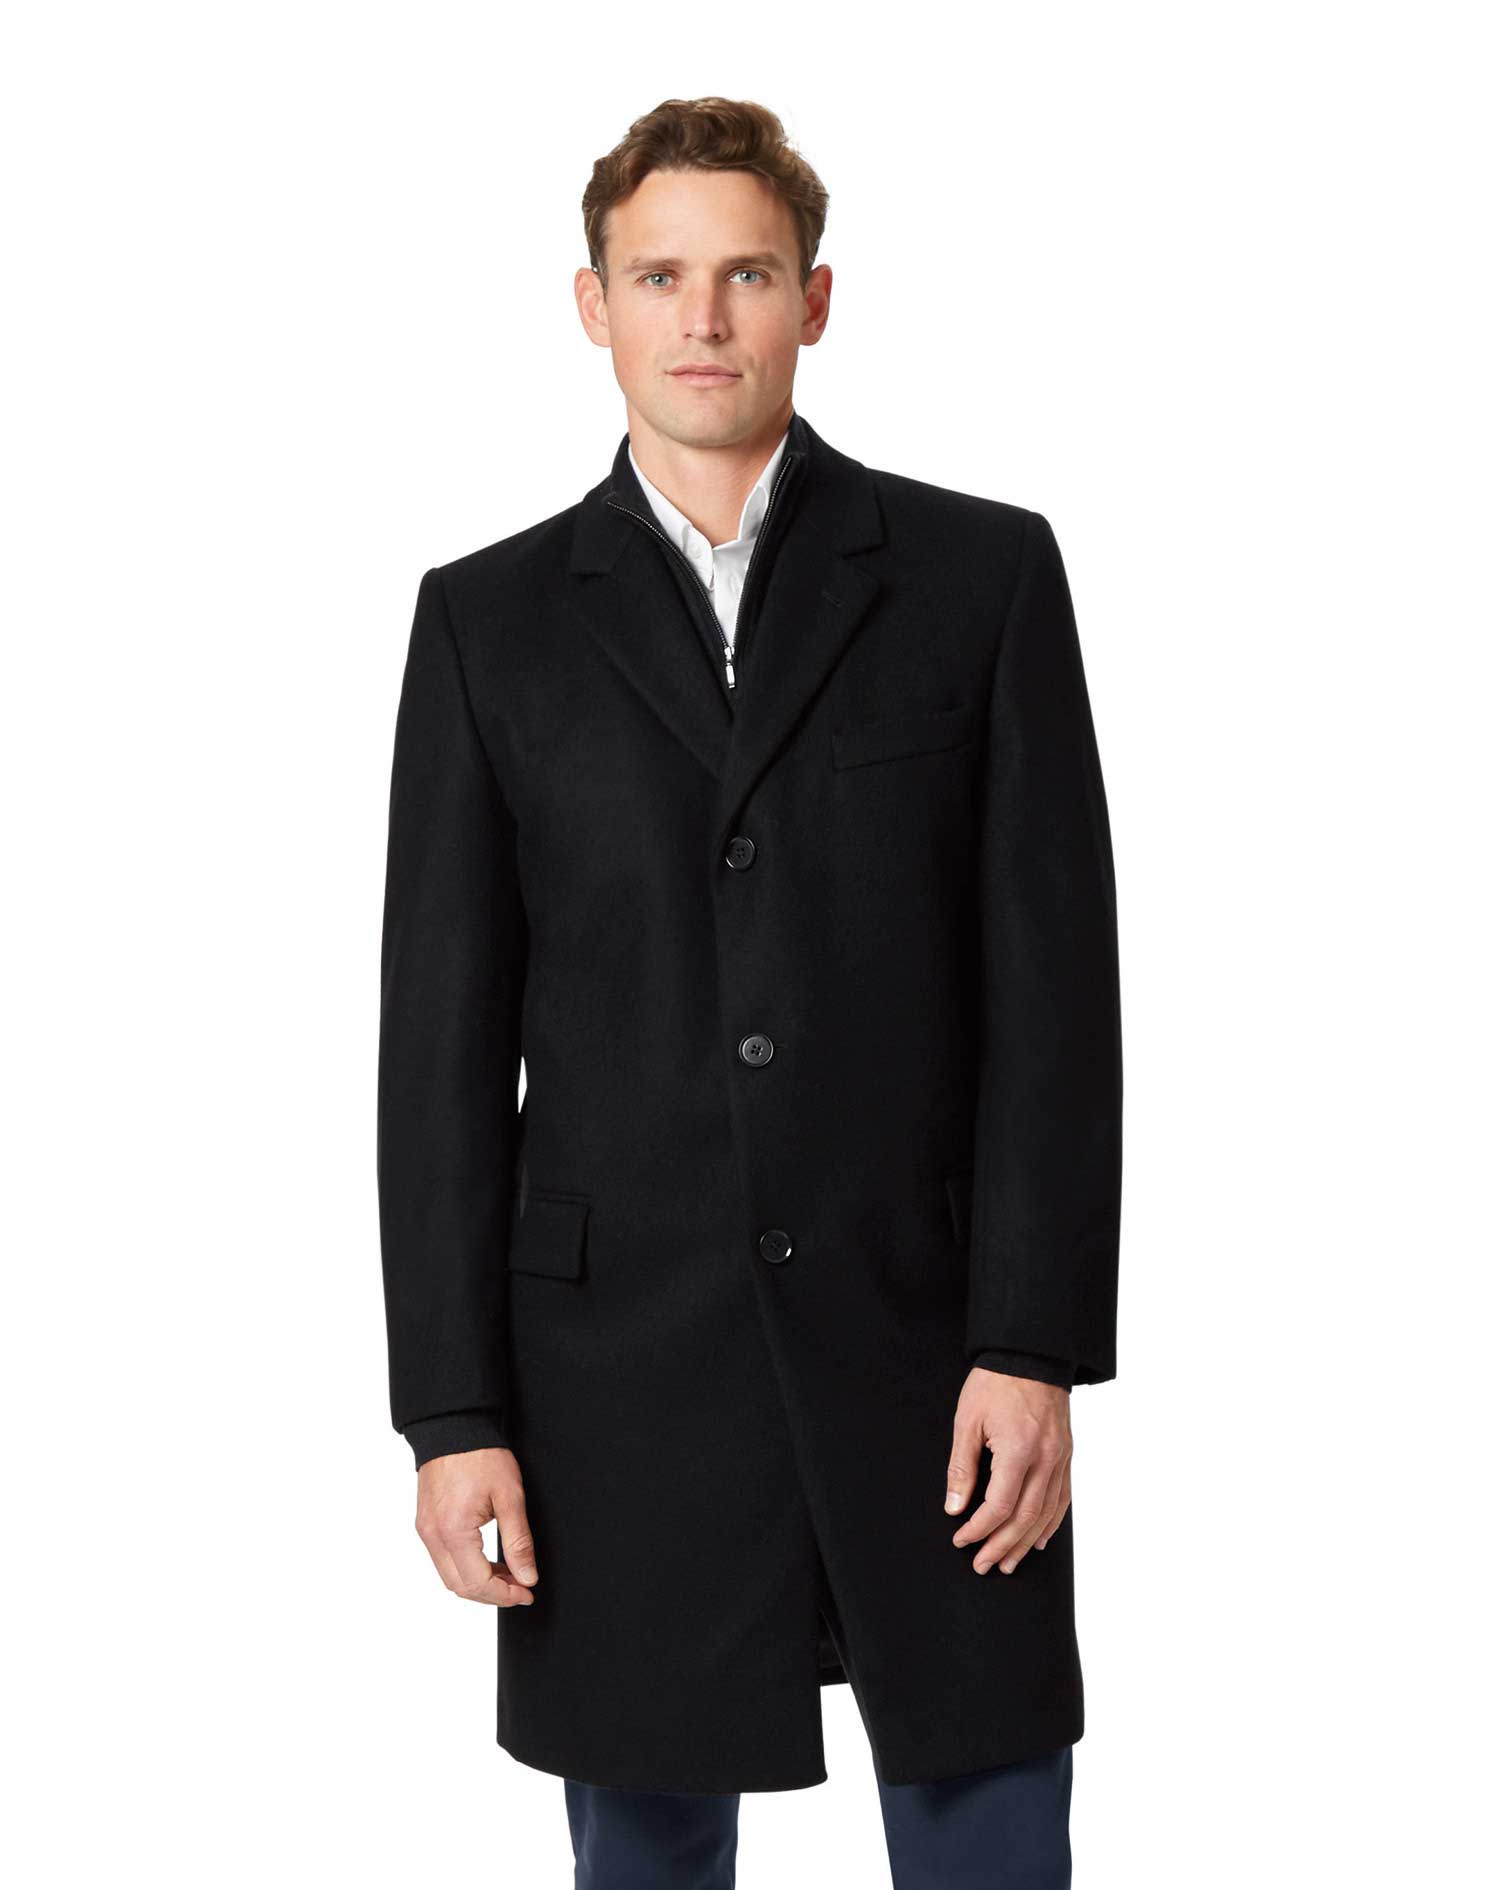 Black Wool and Cashmere Overcoat Size 44 Regular by Charles Tyrwhitt